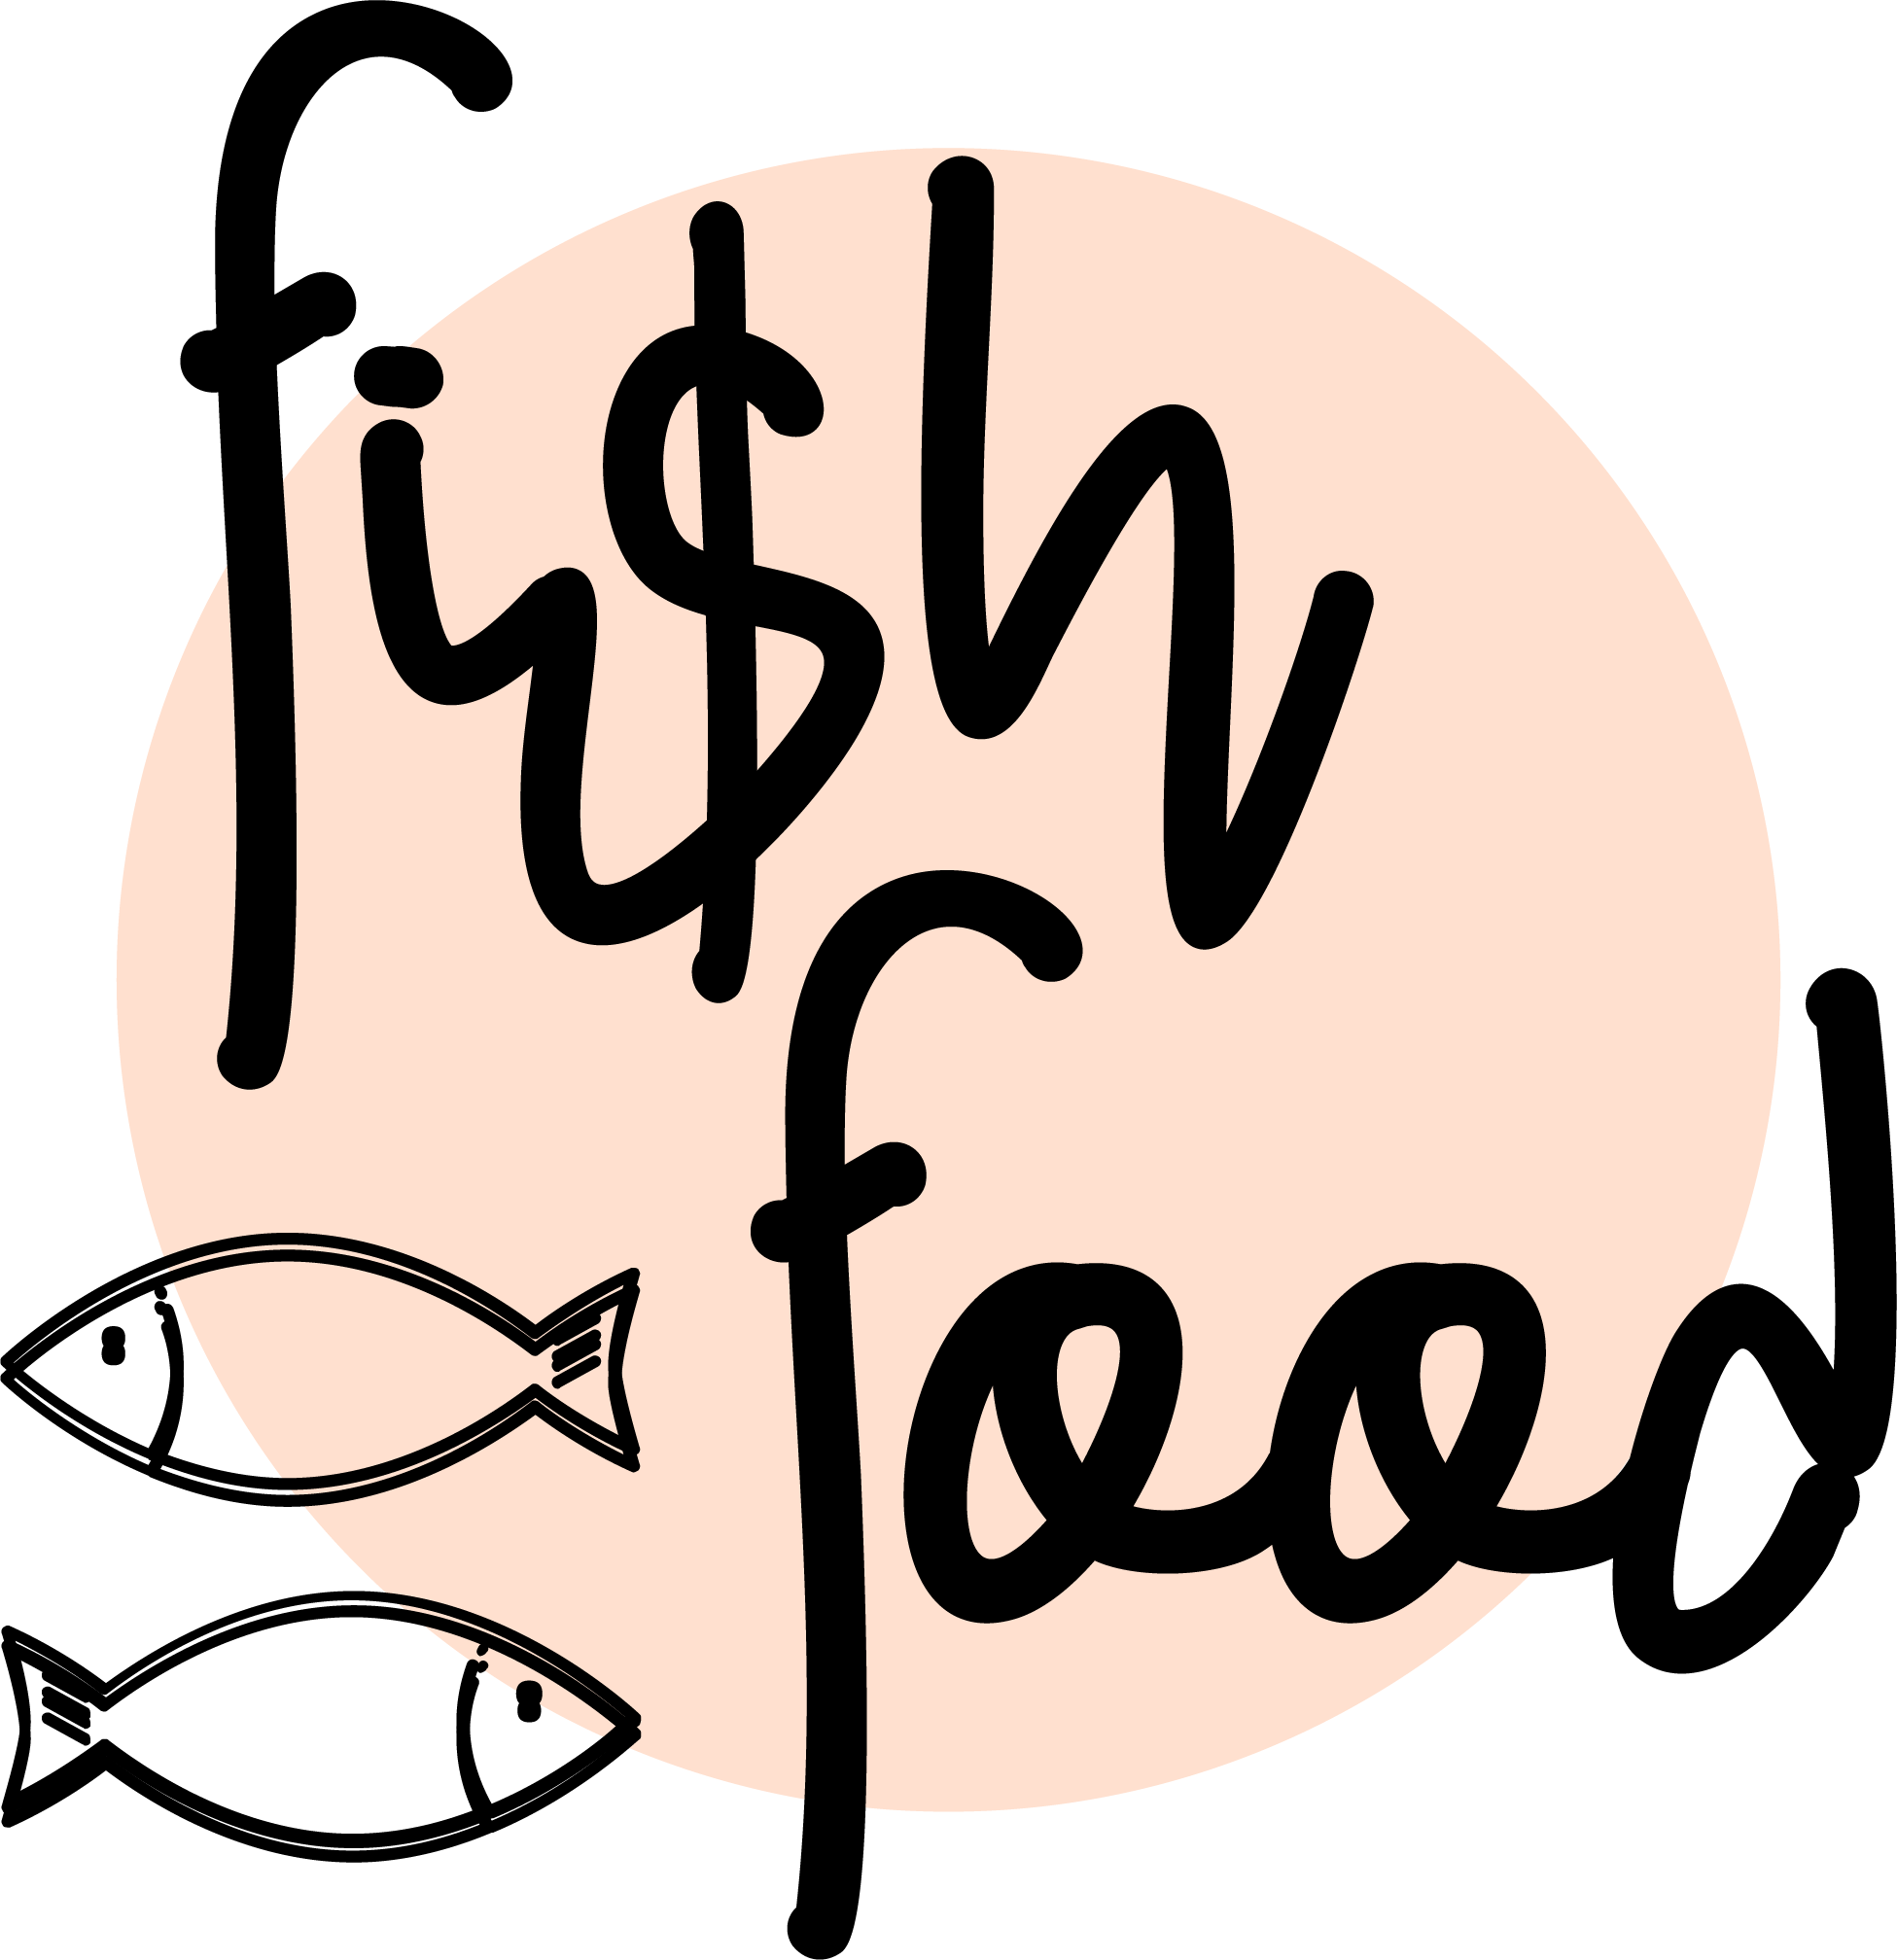 Fish Food Episode 6 - You Got a Letter from the IRS. Now What? - Little Fish Accounting